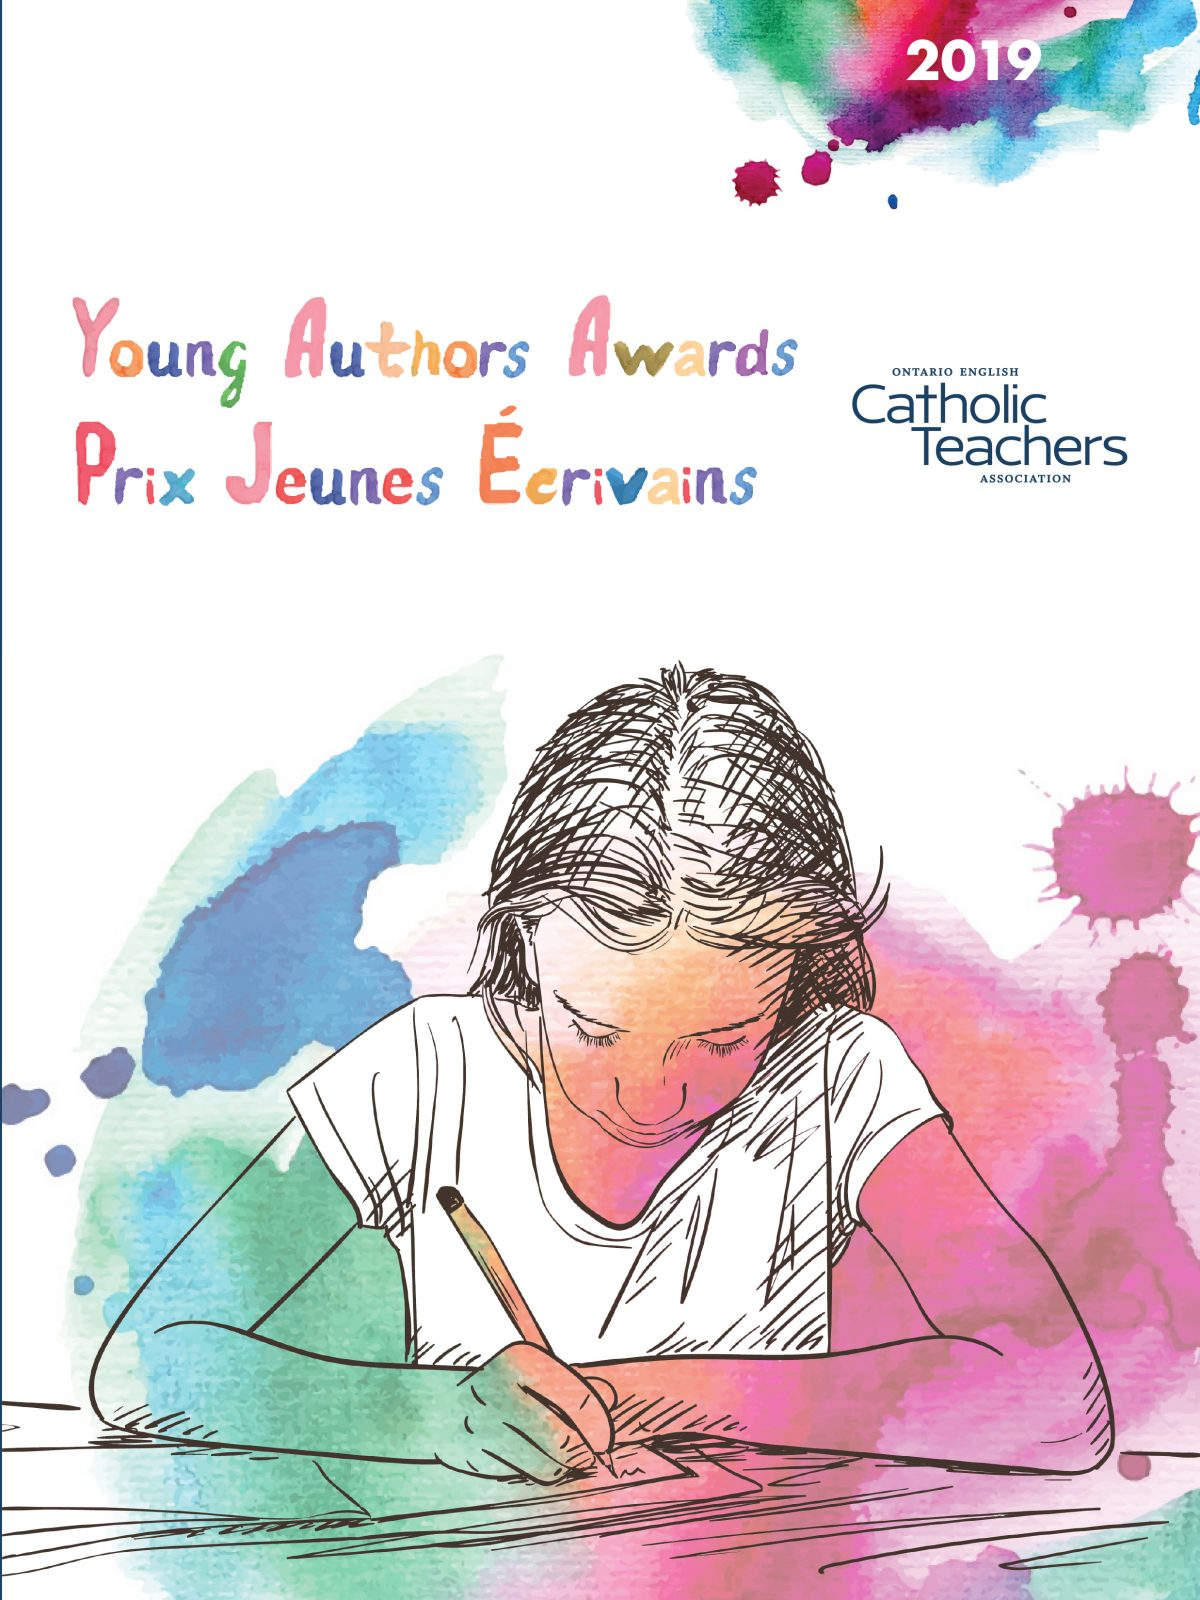 Congratulations to our 2019 OECTA Young Authors